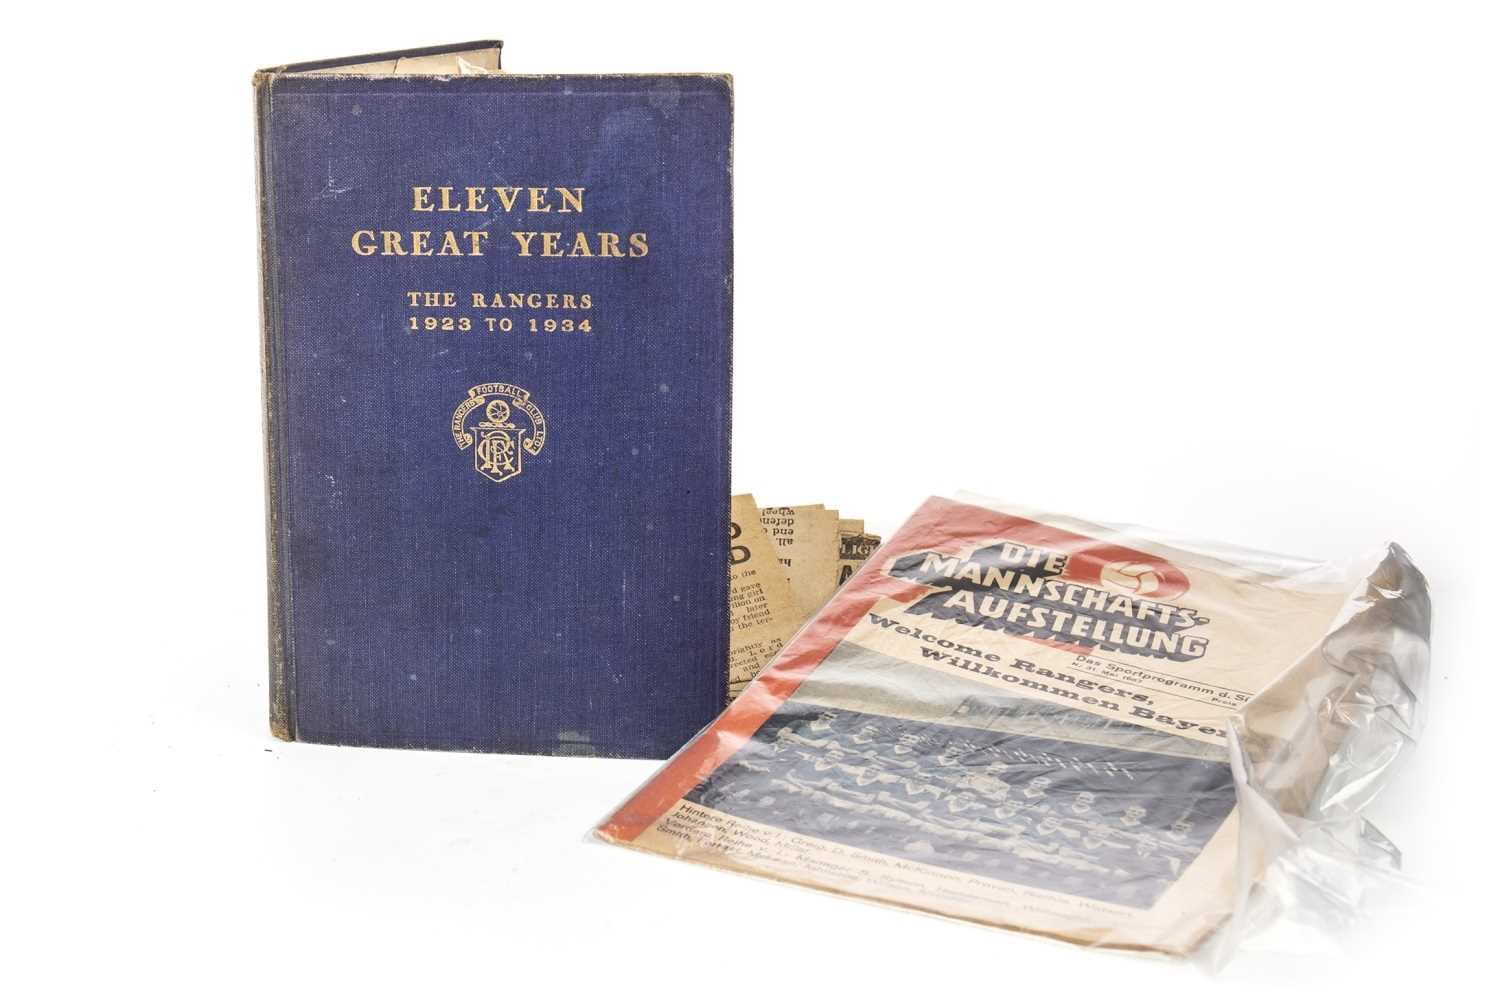 Lot 1814-ELEVEN GREAT YEARS, THE RANGERS 1923 TO 1934, BY JOHN ALLAN